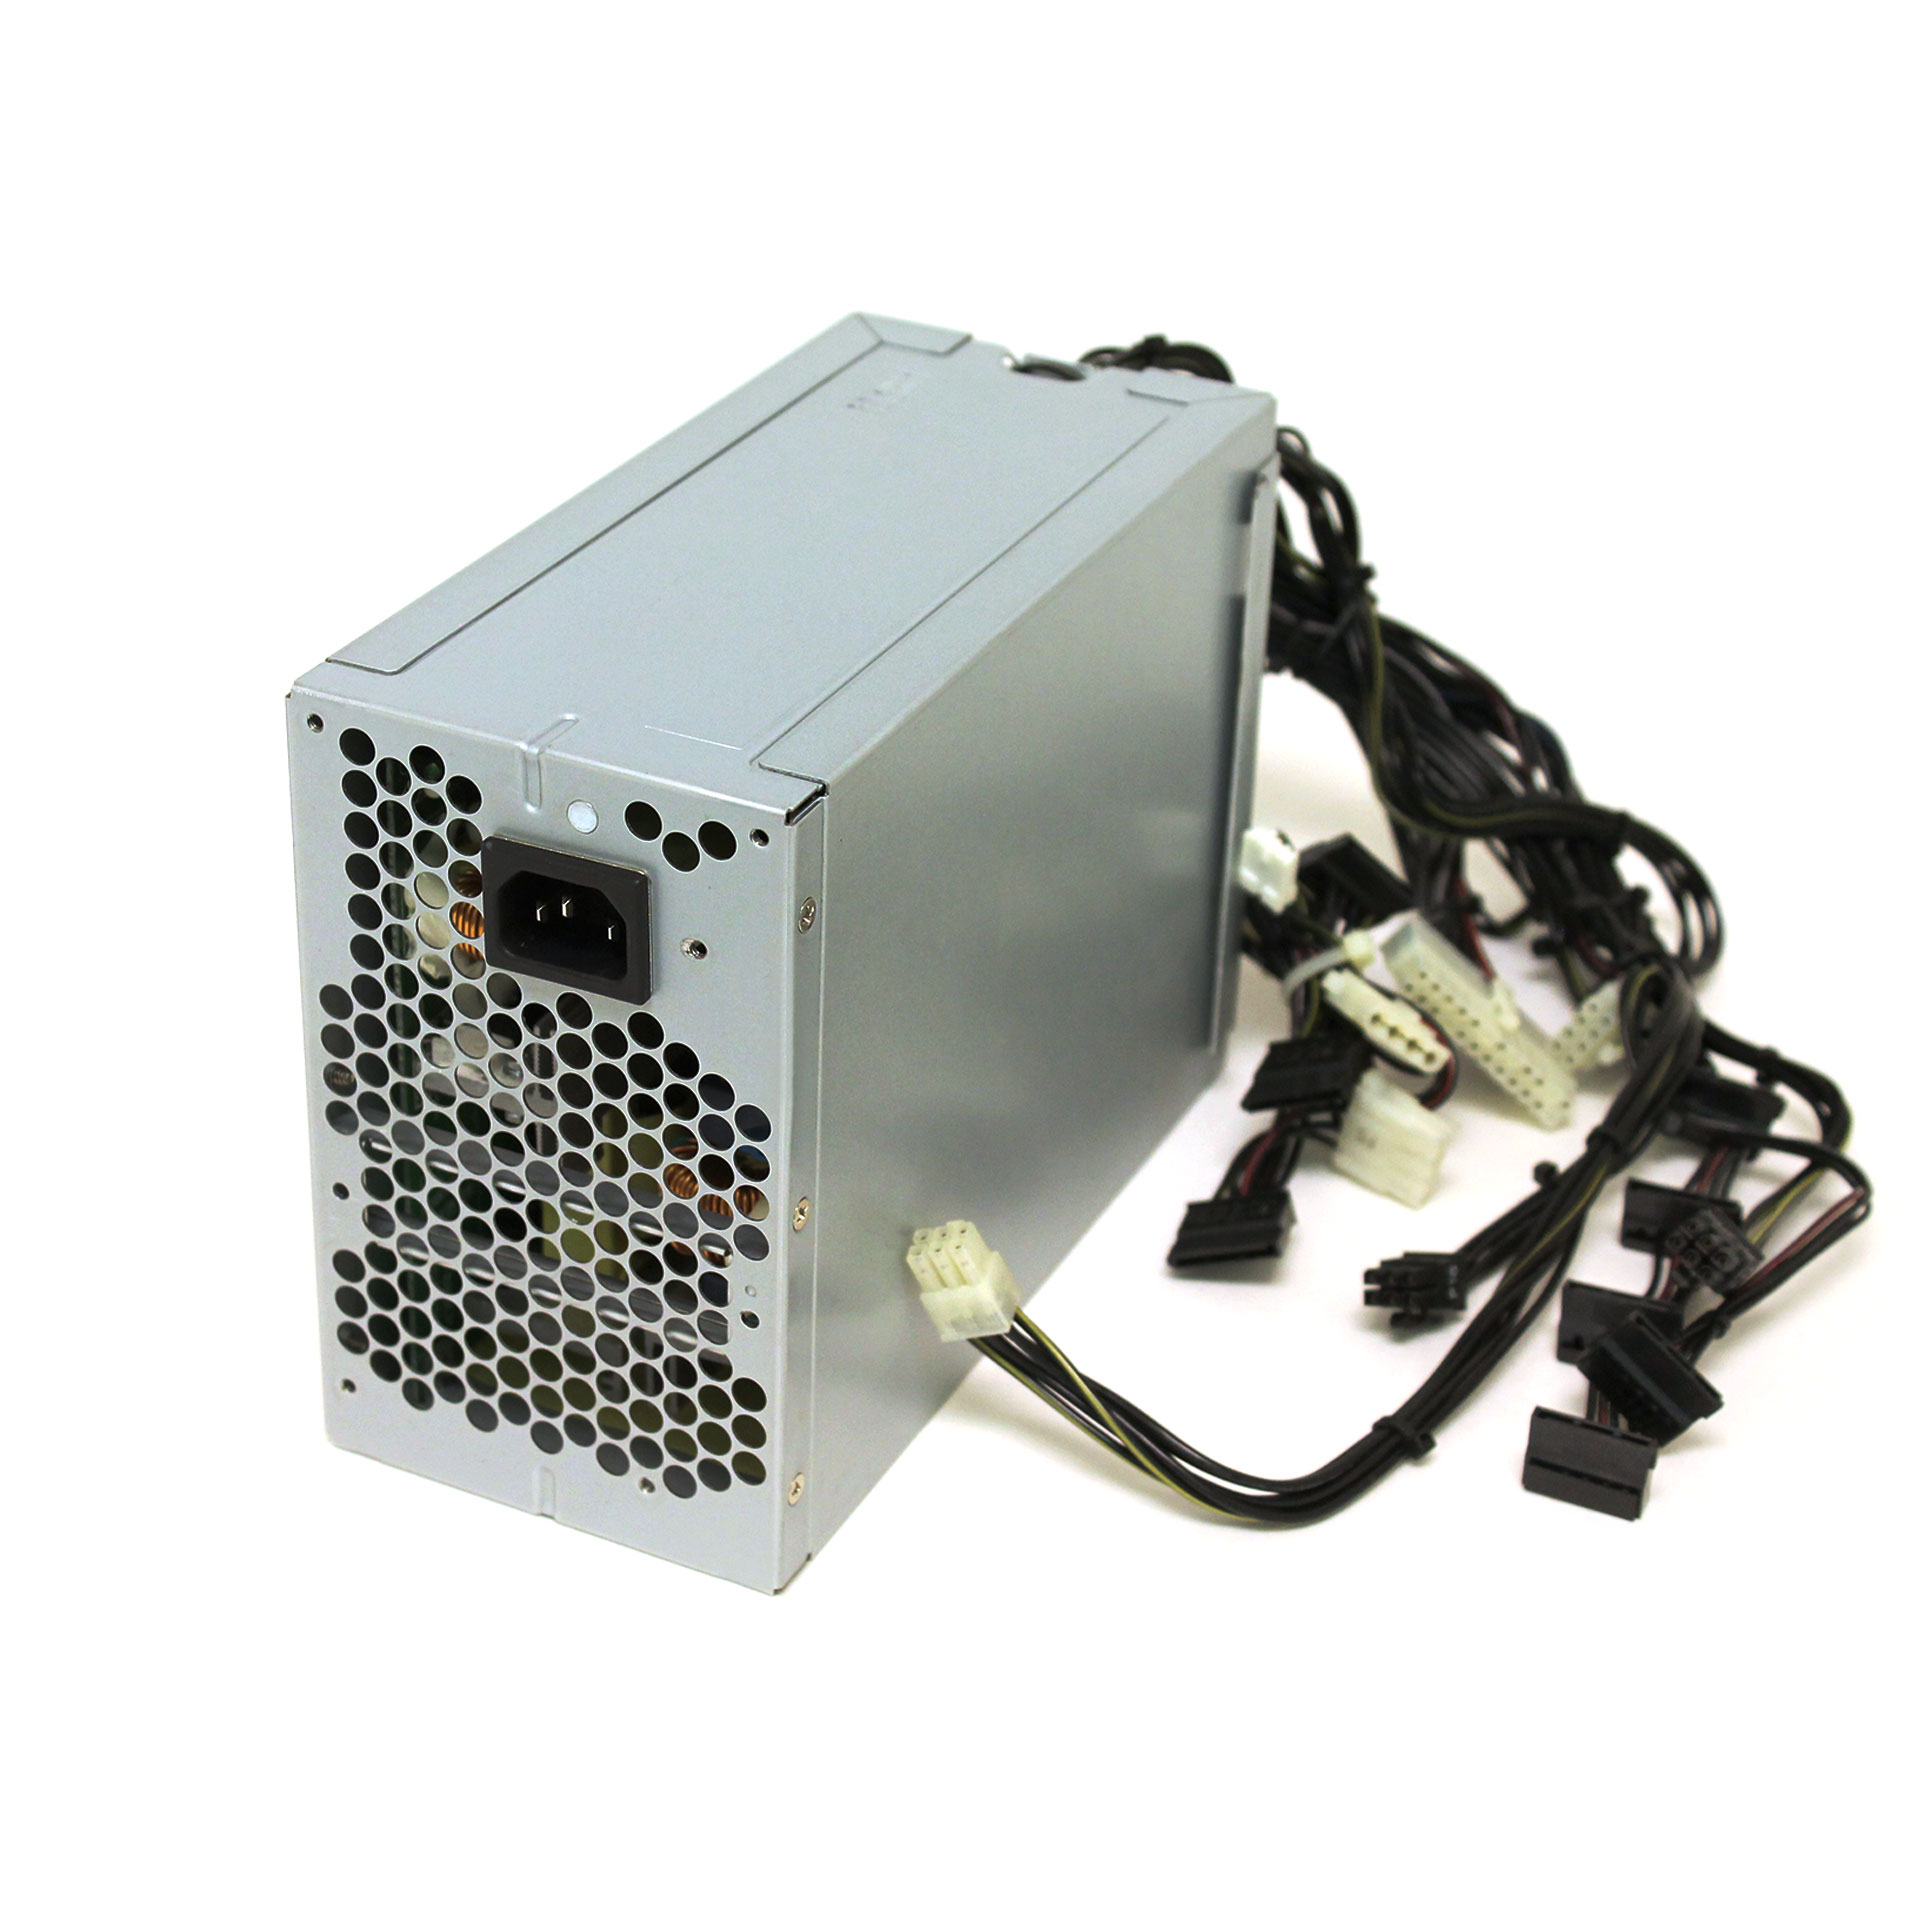 Power Supply HP XW8600 800 Watt P/N 444411-001 HP PN 444096-001